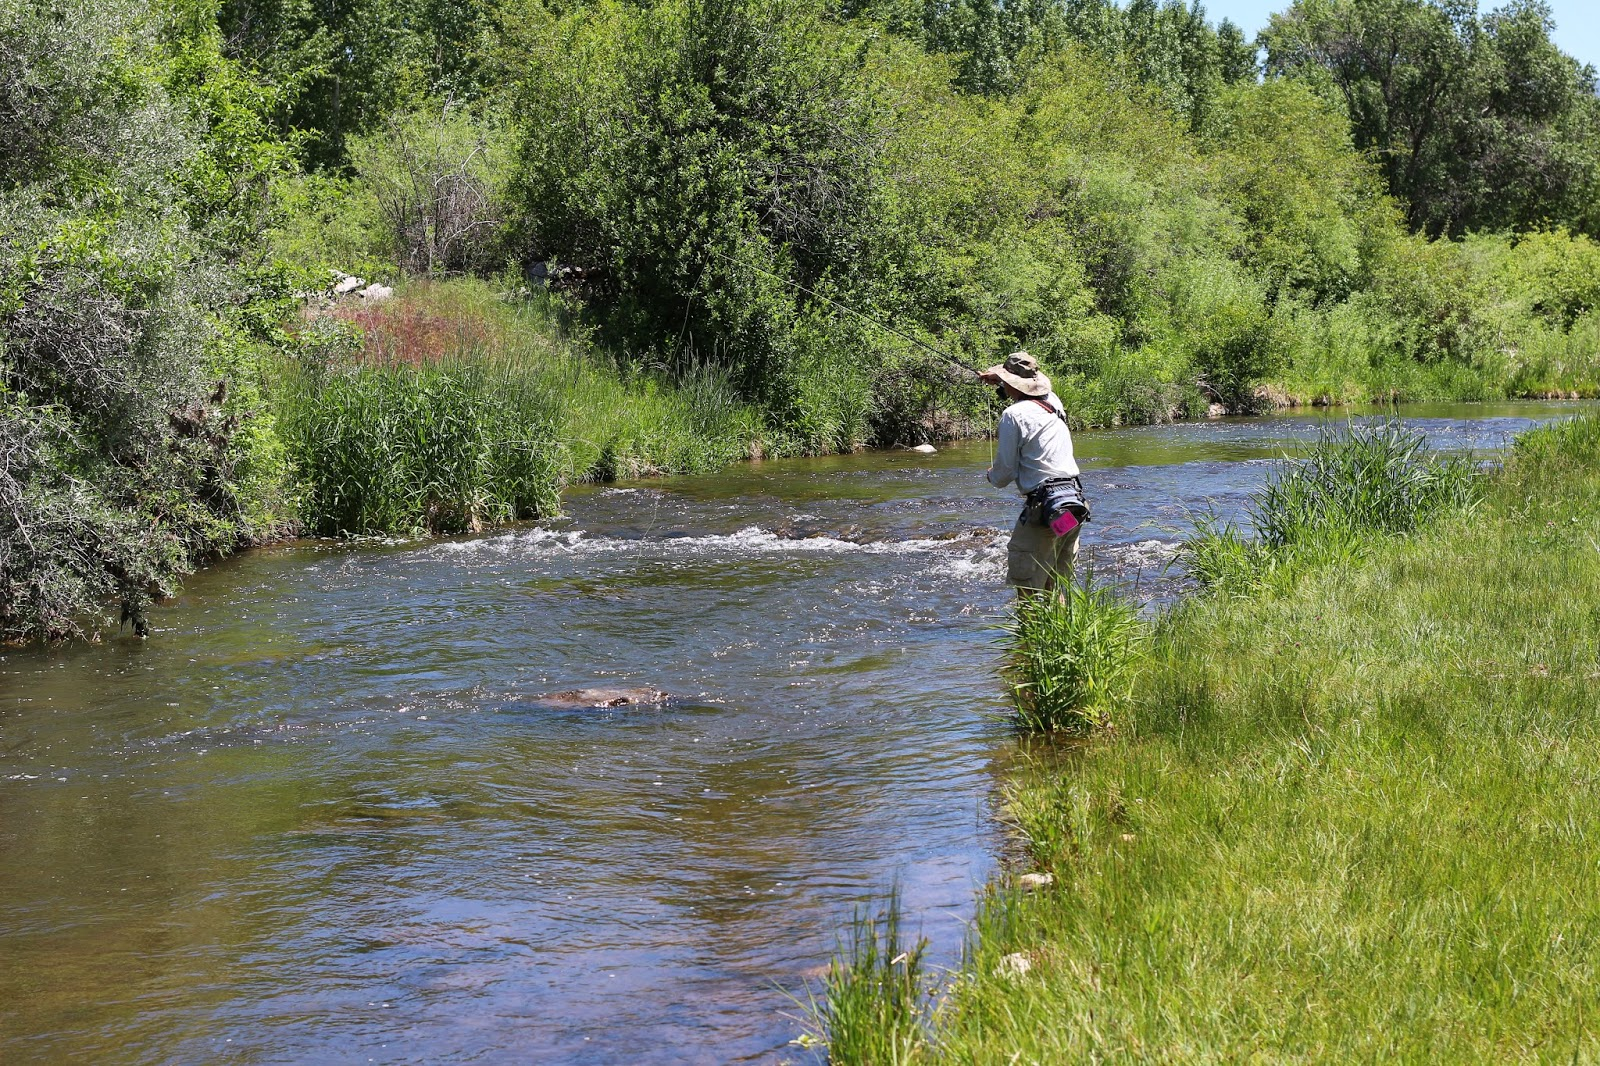 Roaring+Fork+High+Water+Photo+in+Colorado+with+Jay+Scott+Outdoors+10.JPG